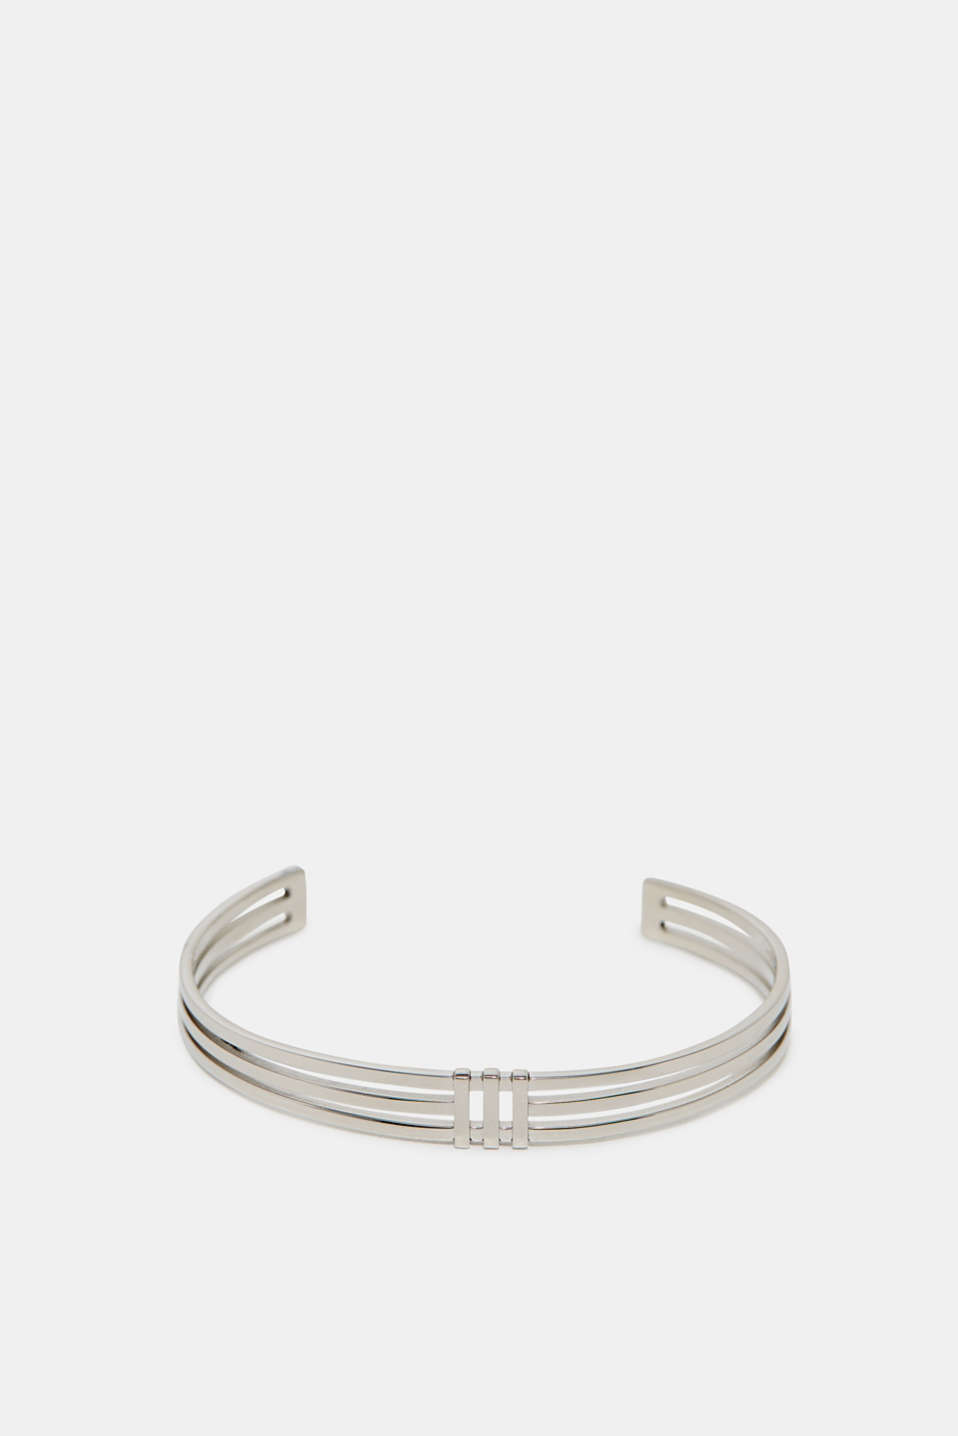 Esprit - Bangle in silver tone stainless steel